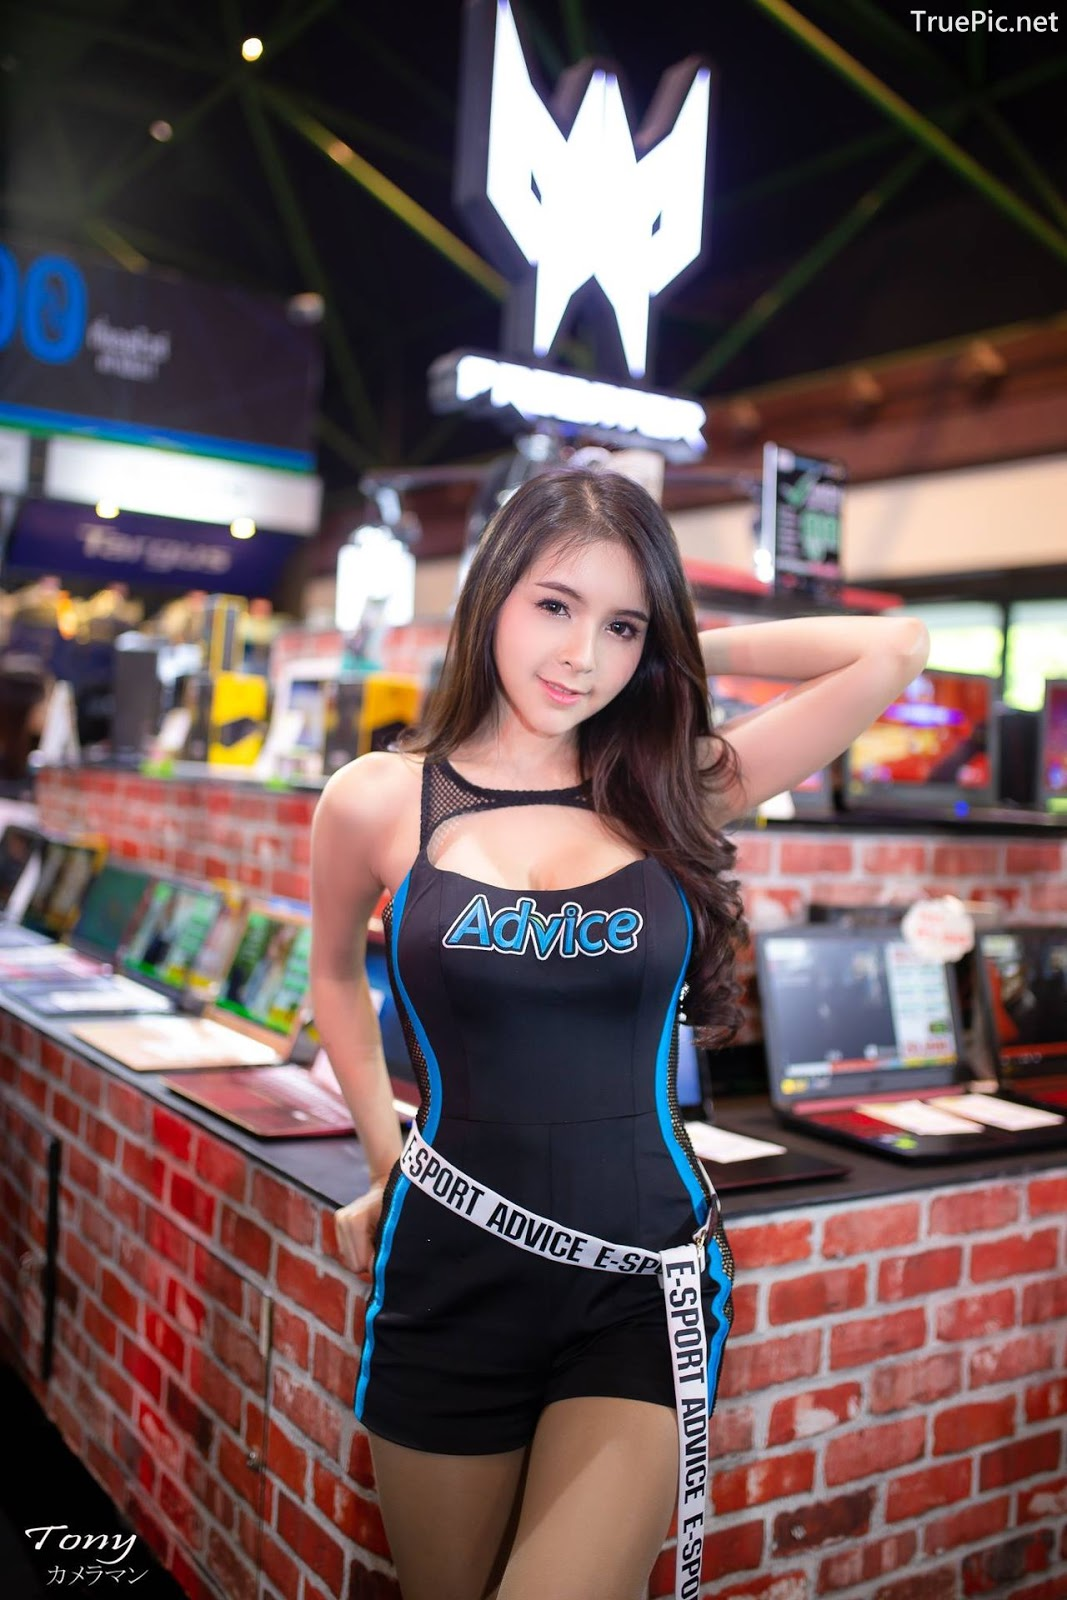 Image-Thailand-Hot-Model-Thai-PG-At-Commart-2018-TruePic.net- Picture-53